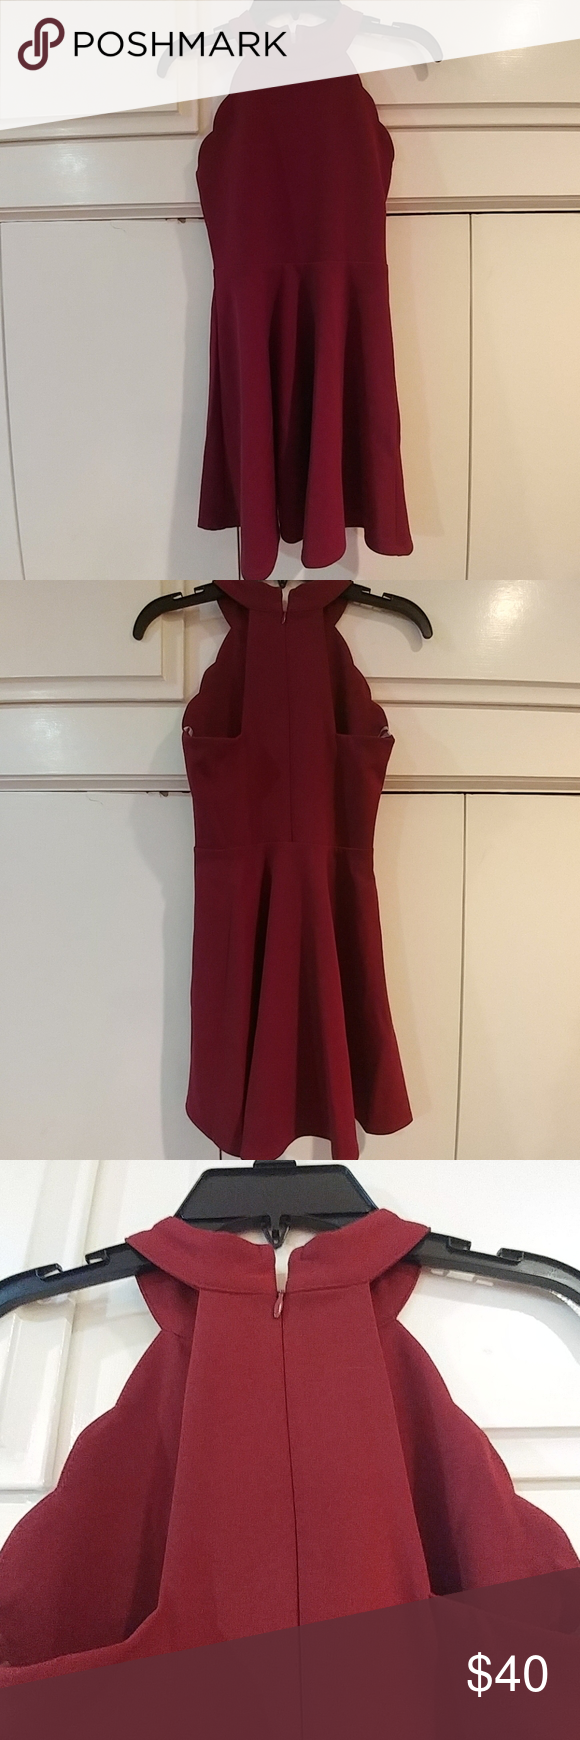 Sally Miller Bordeaux Dress Bordeaux zippered dress. Round neckline, with a cute curvy pattern down Sides of front. Sleeveless. Back has cut out near zipper. See pictures. NWT Sally Miller Dresses Casual #sallymiller Sally Miller Bordeaux Dress Bordeaux zippered dress. Round neckline, with a cute curvy pattern down Sides of front. Sleeveless. Back has cut out near zipper. See pictures. NWT Sally Miller Dresses Casual #sallymiller